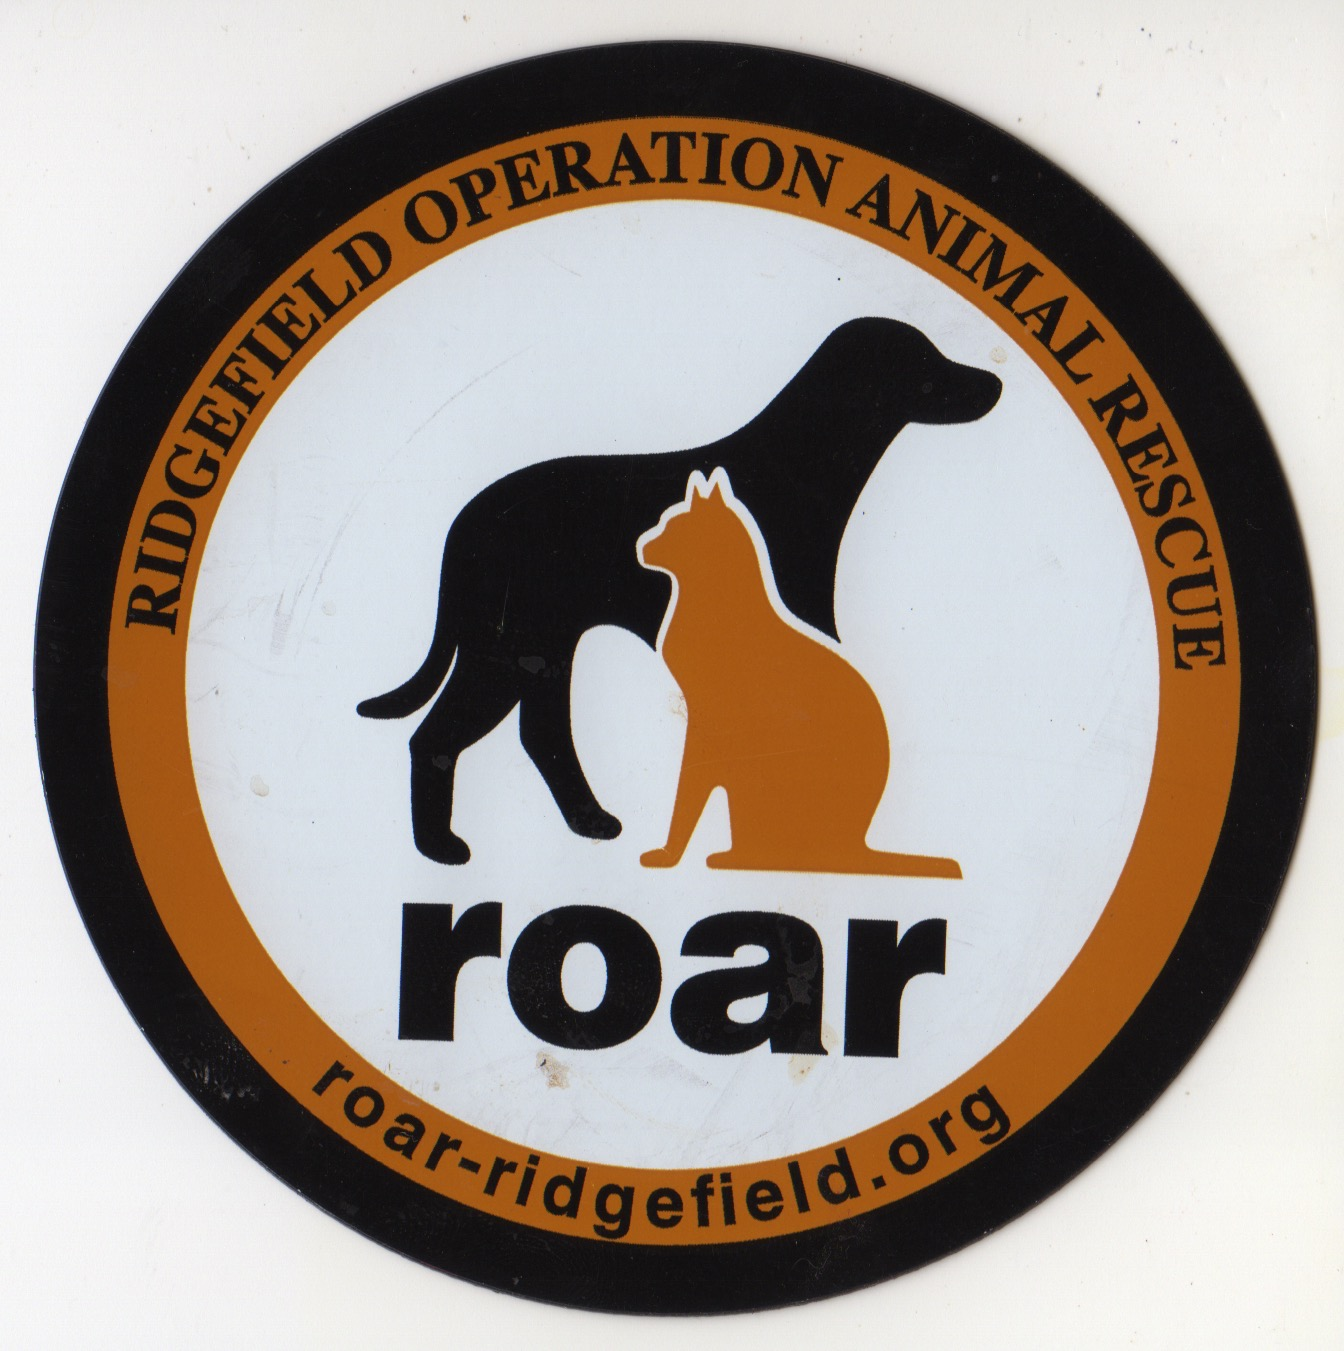 A new volunteer for Ridgefield Operation for Animal Rescue (ROAR)